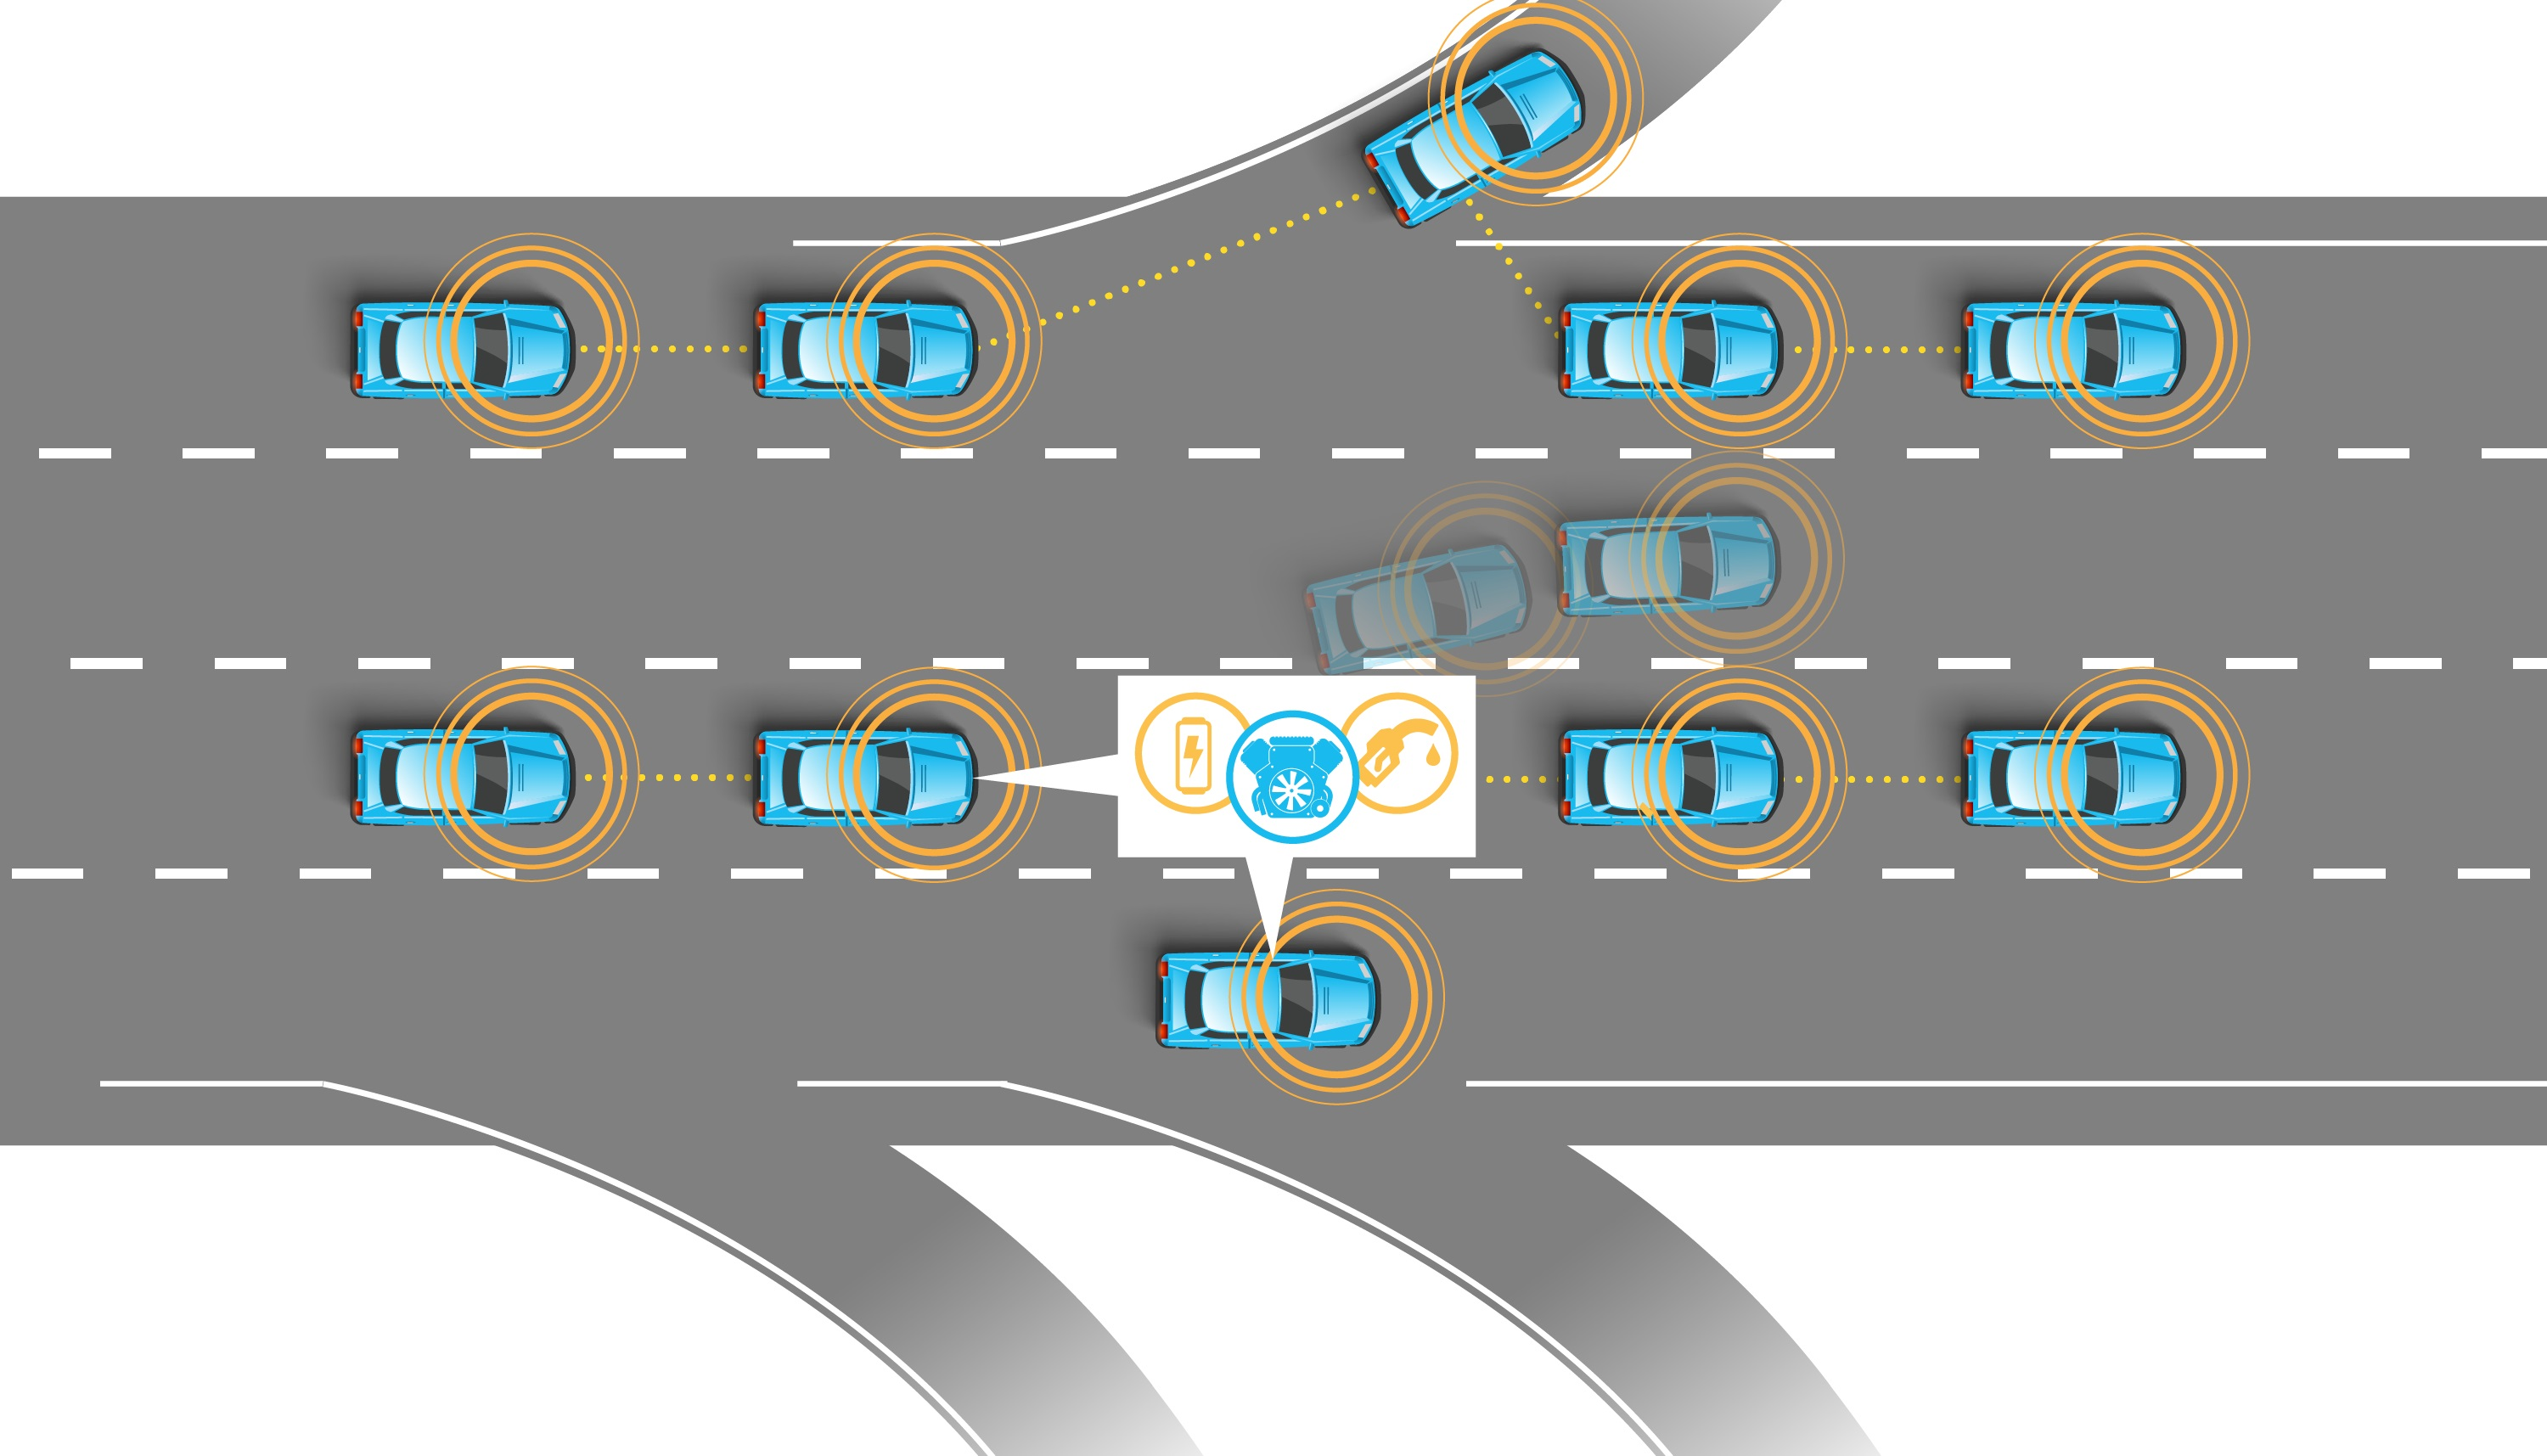 Energy-Efficiency Optimization for Connected and Automated Vehicles